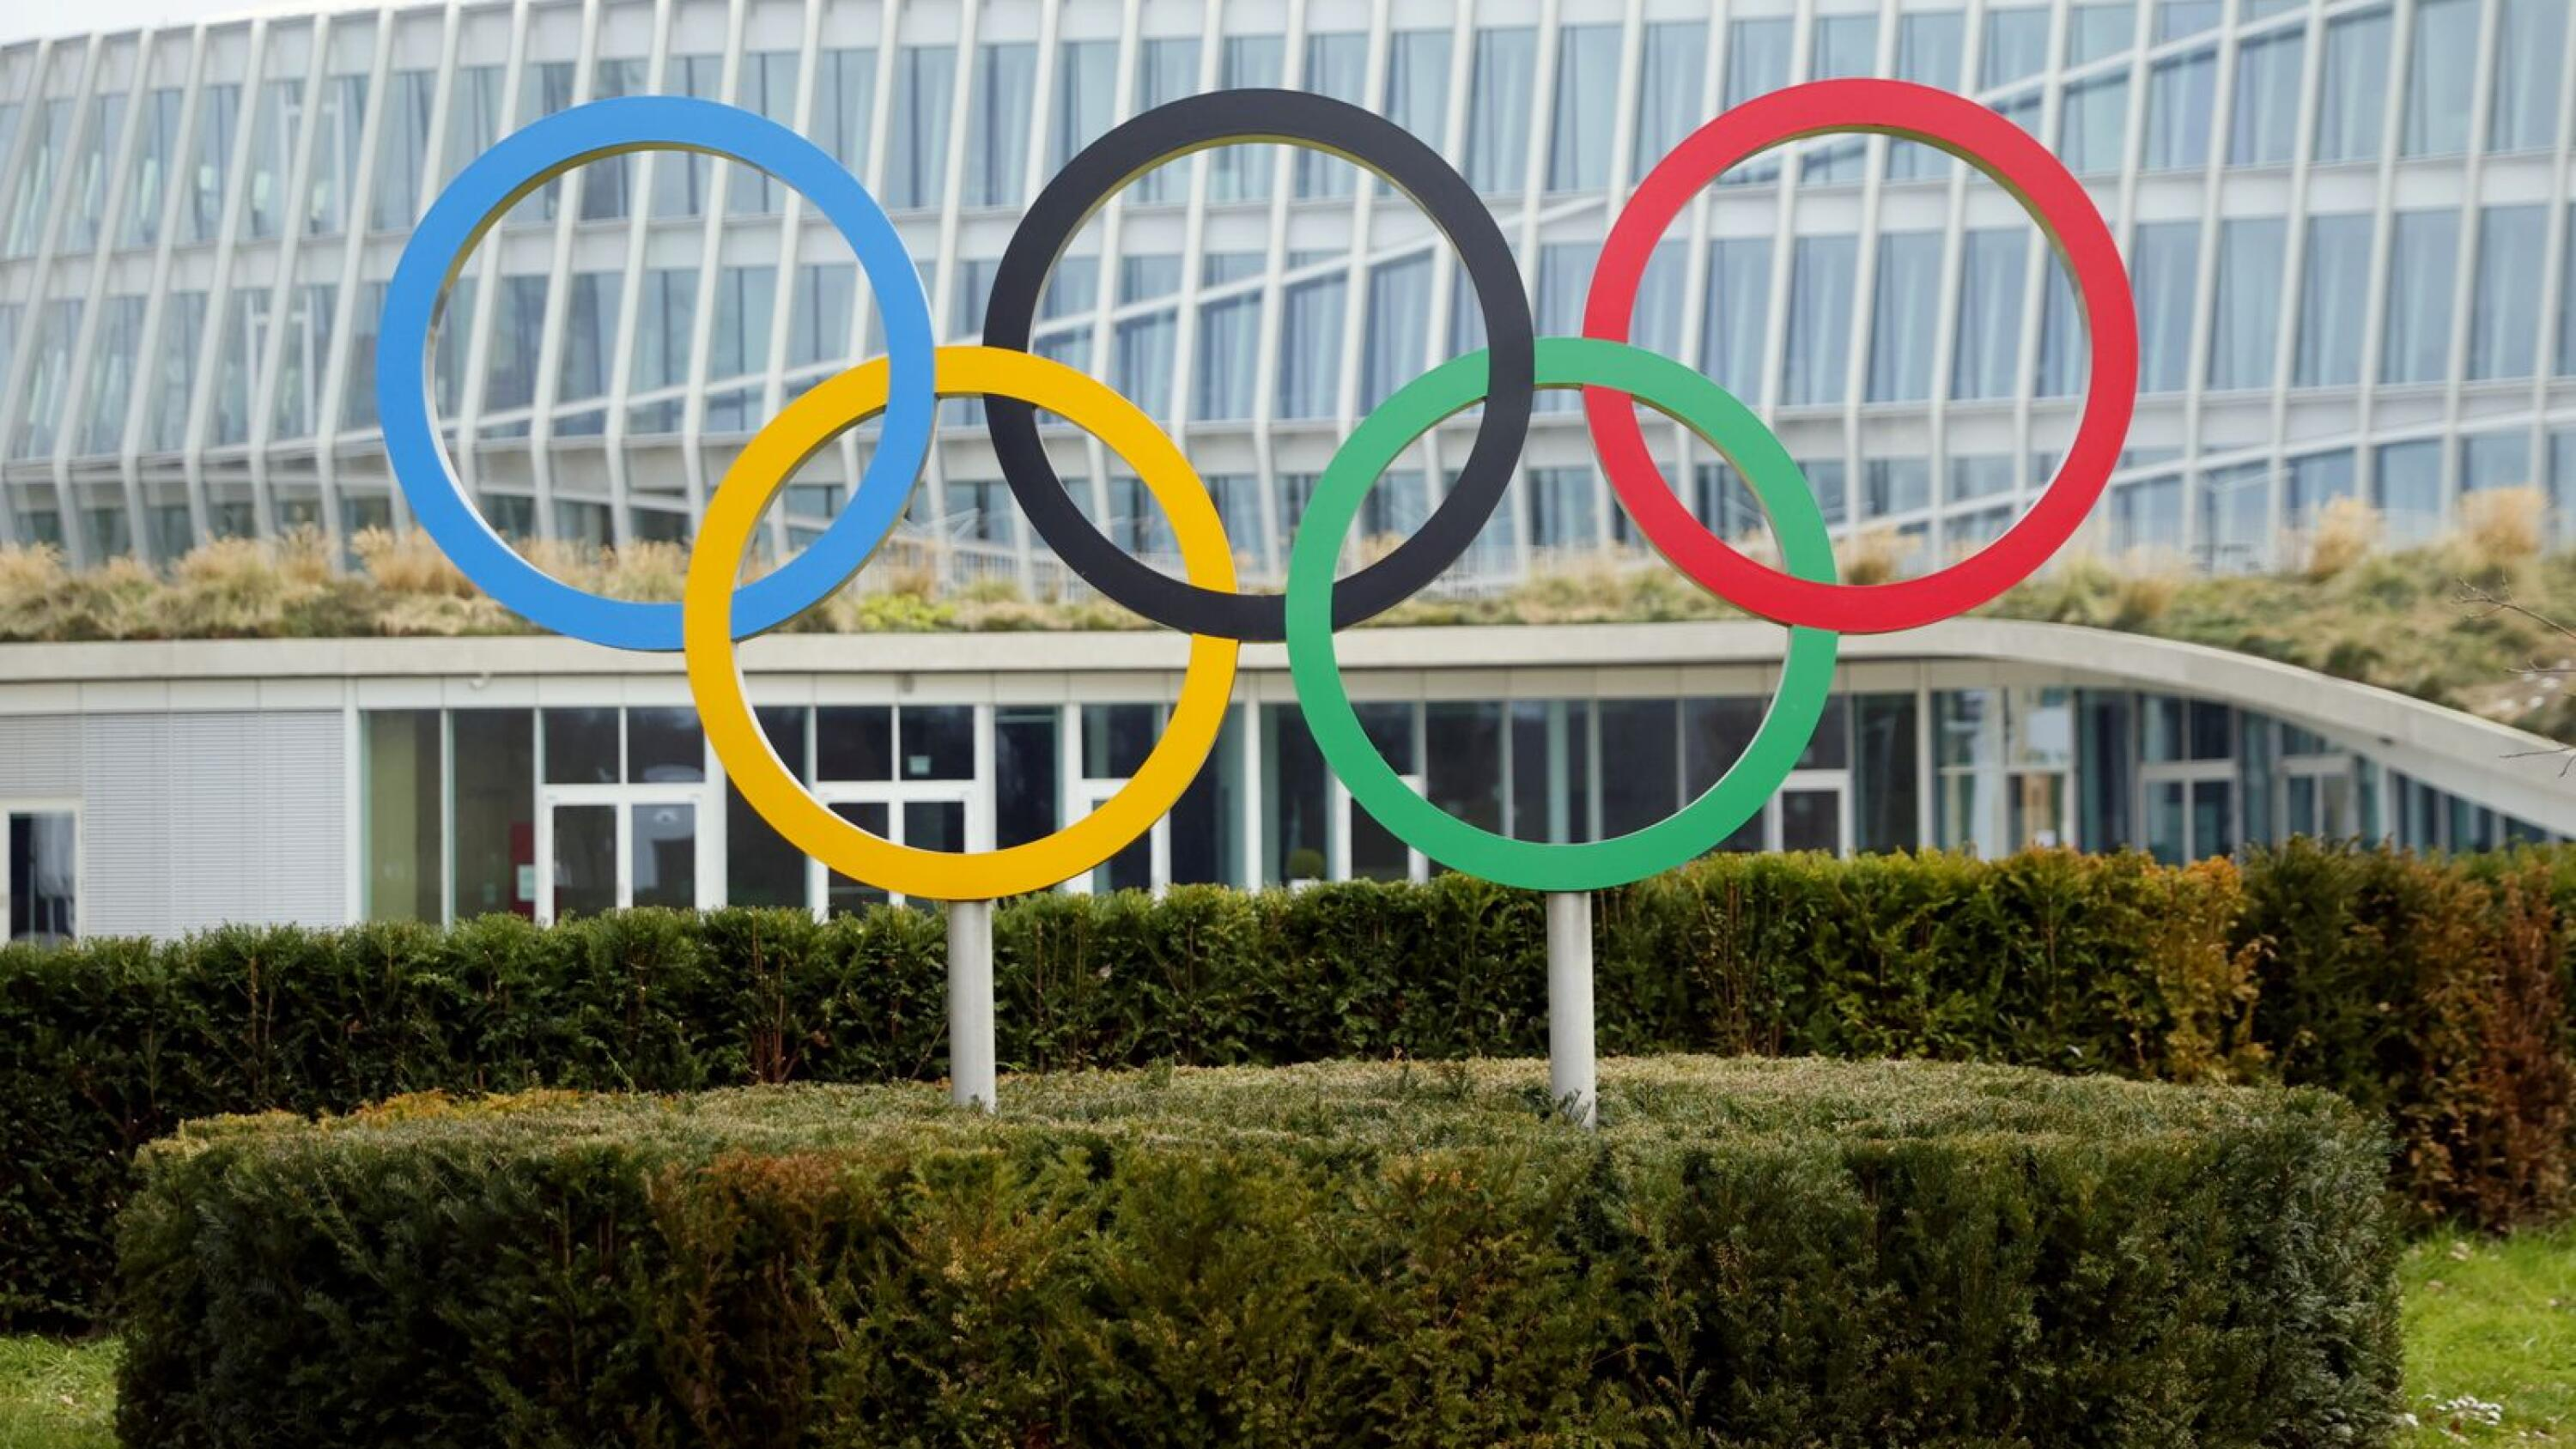 The Olympic rings are pictured in front of the International Olympic Committee (IOC) headquarters